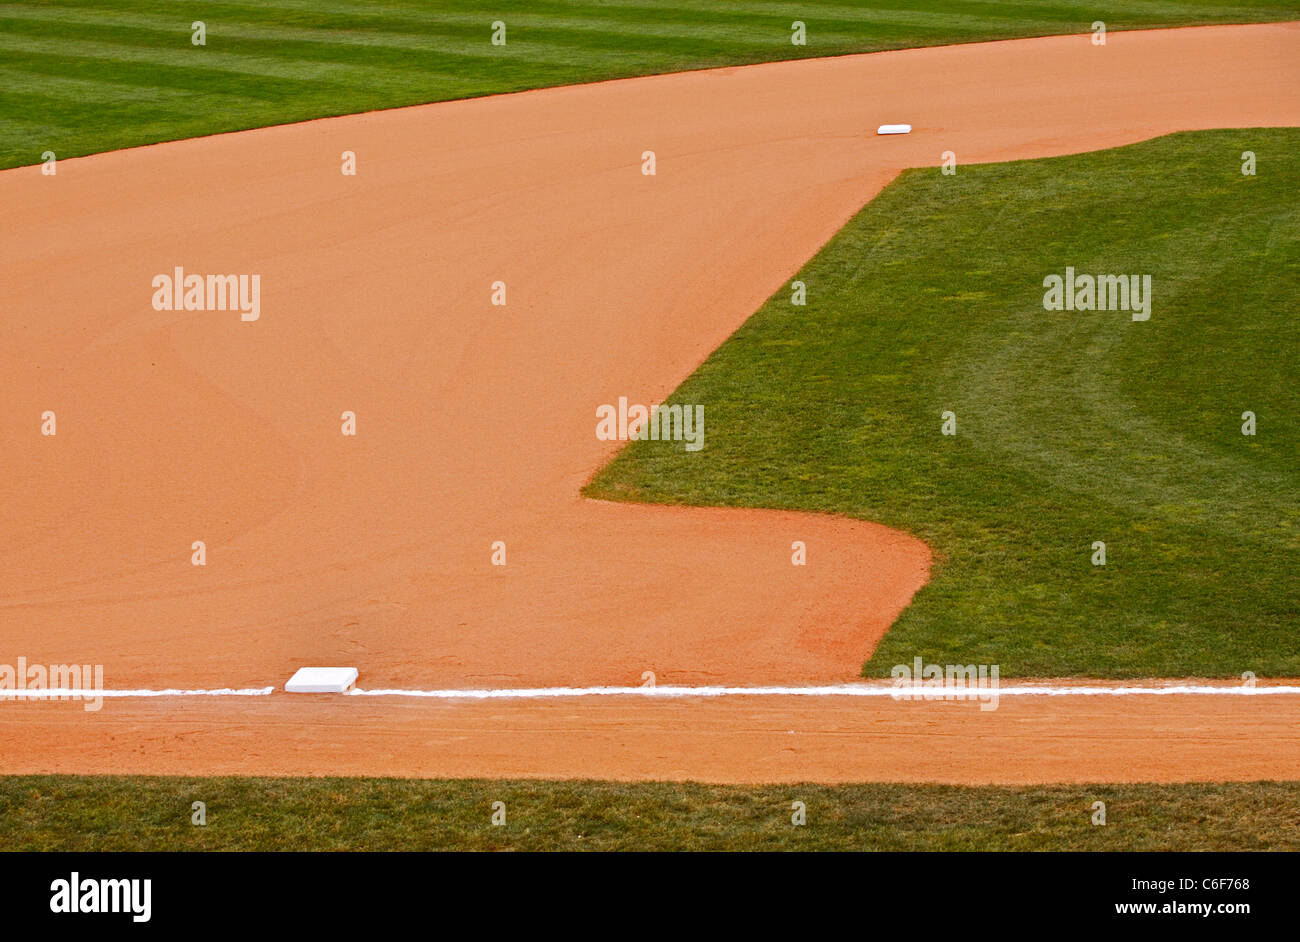 A portion of an baseball park's dirt and grass infield showing second and third bases. - Stock Image